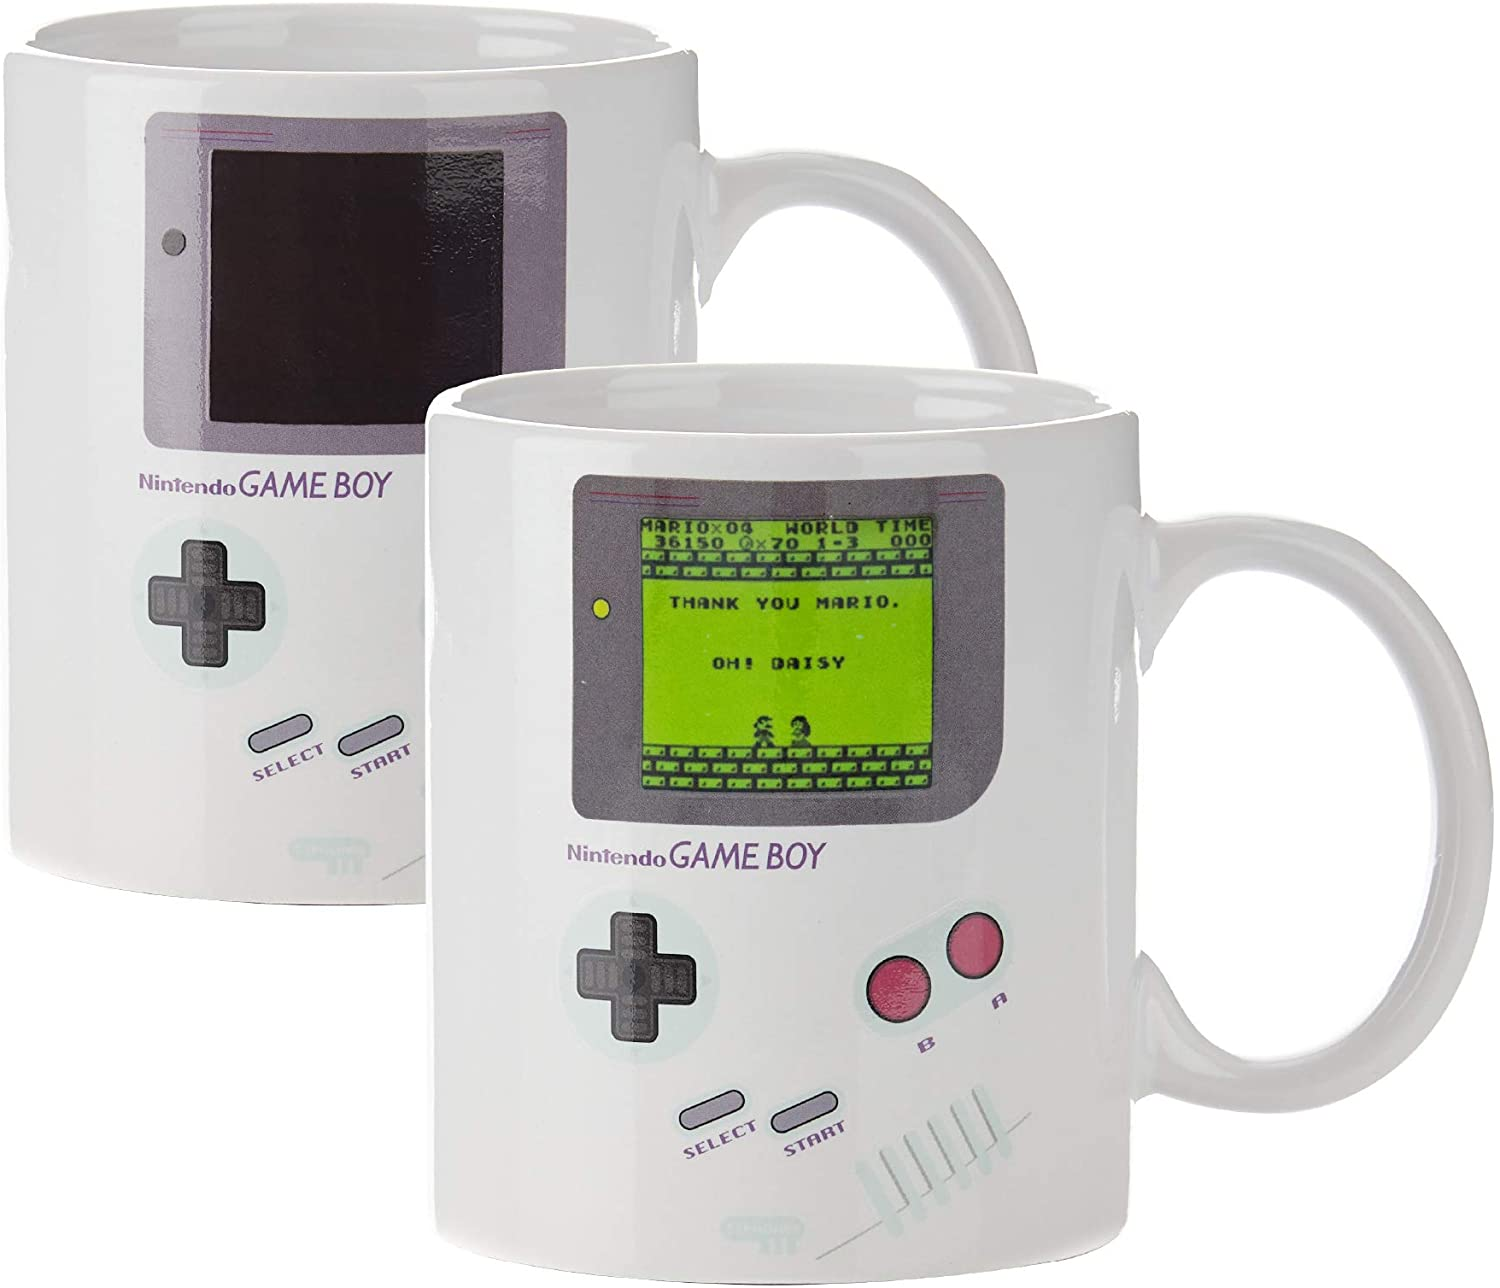 One of the best coffee mugs with and without the heat-activated Mario screen